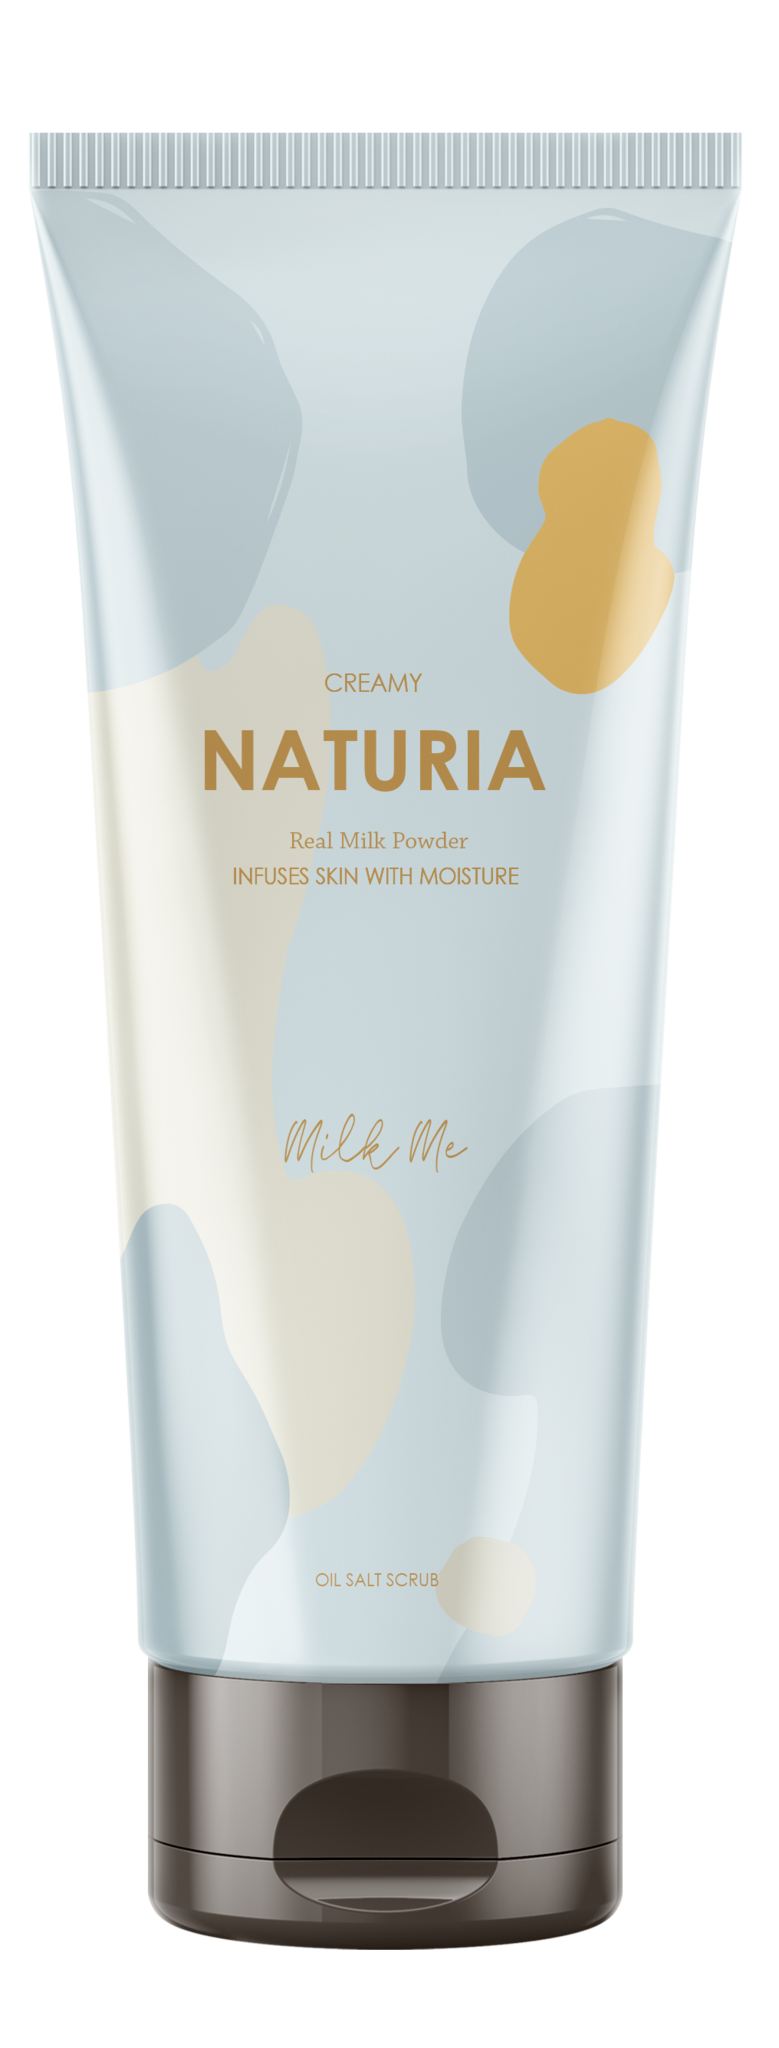 Новинки Скраб для тела Молочный , NATURIA, Creamy Oil Salt Scrub, Milk Me, 250 гр. uploads_photos__NATURIA__005676-_NATURIA__Скраб_для_тела_МОЛОЧНЫЙ_CREAMY_OIL_SALT_SCRUB_Milk_Me_.png